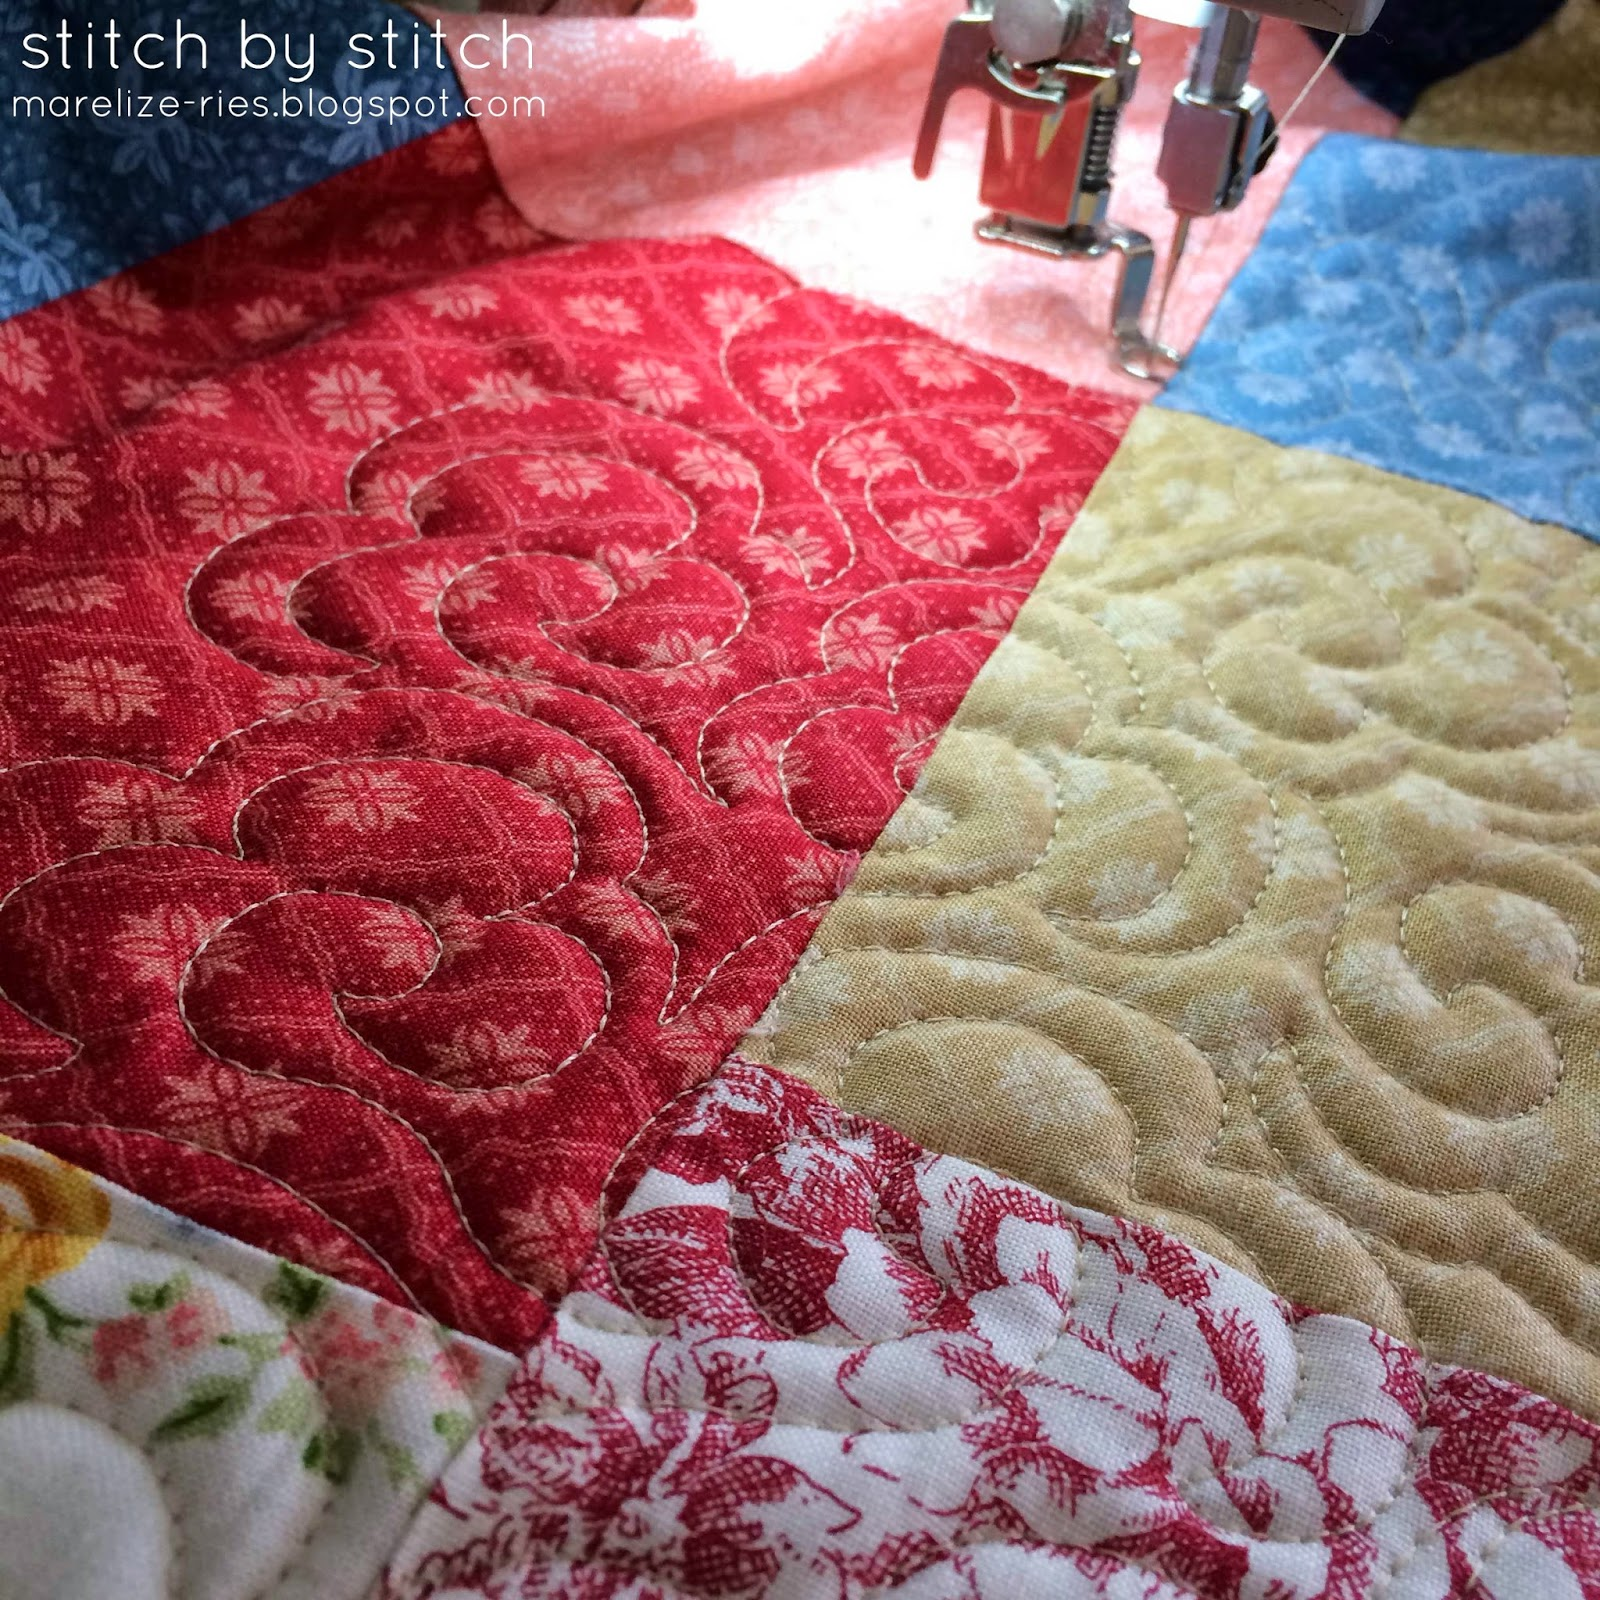 Double Slice Layer Cake Quilt Pattern Free : Stitch by Stitch: Double Slice Layer Cake Quilt